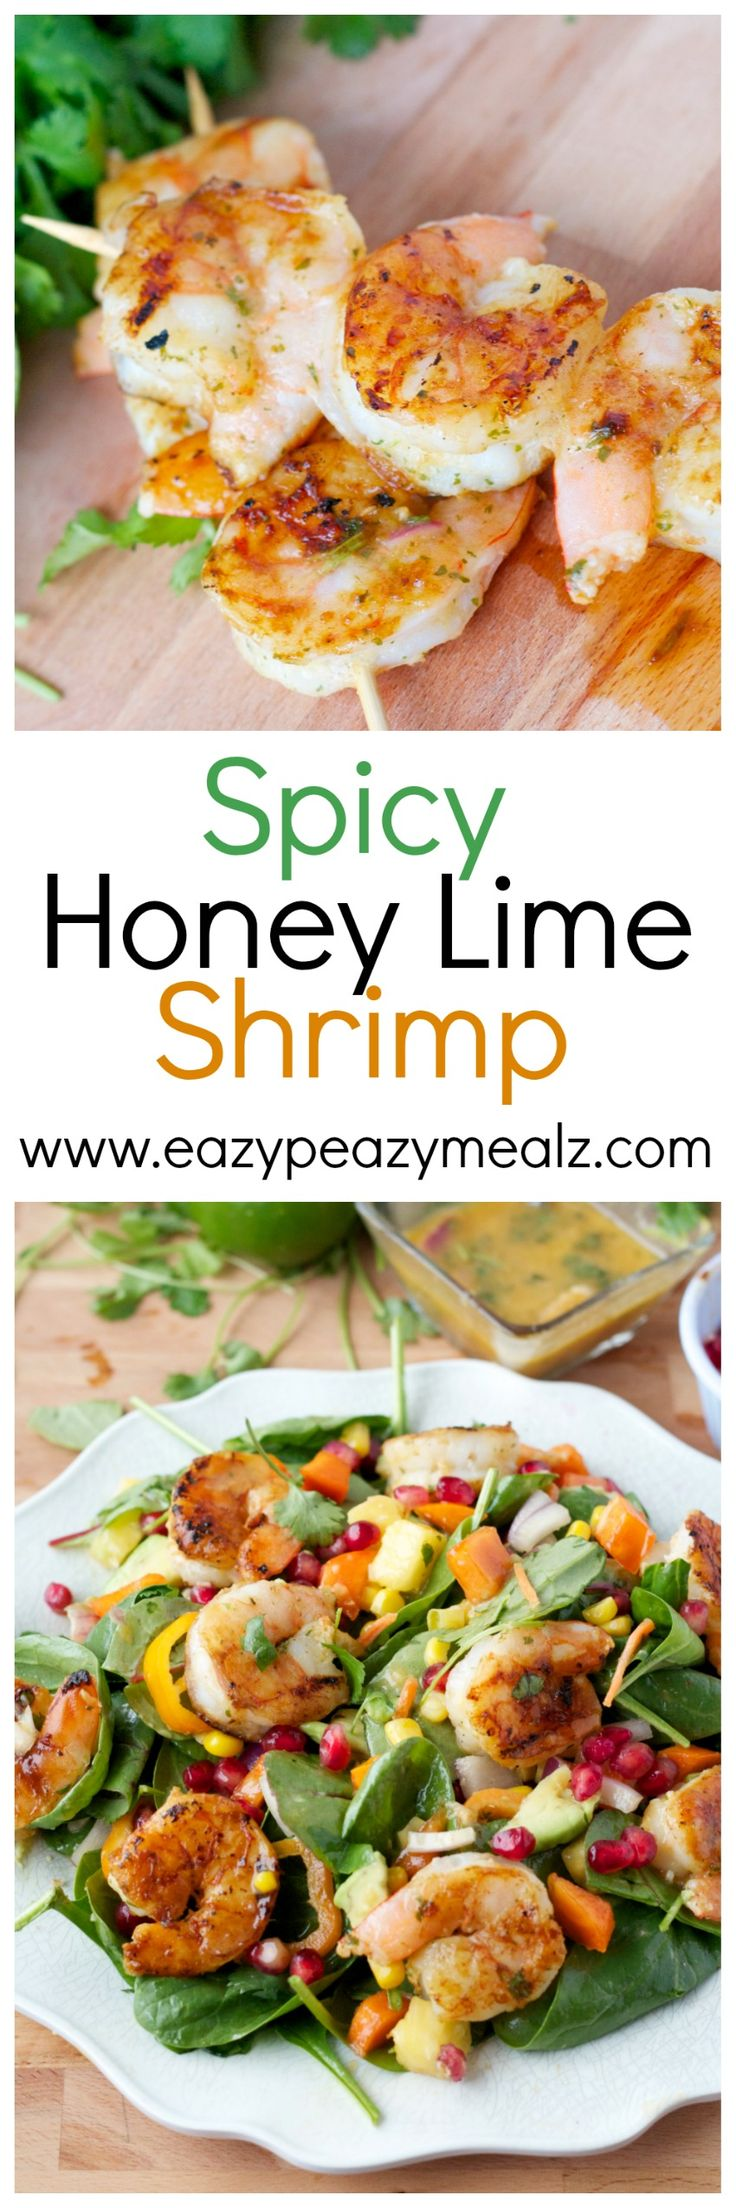 Spicy Honey Lime Shrimp: A perfect tangy and sweet marinade with just the right amount of spice. Perfect for salads or game day! So versatile. - Eazy Peazy Mealz-use the George Forman grill